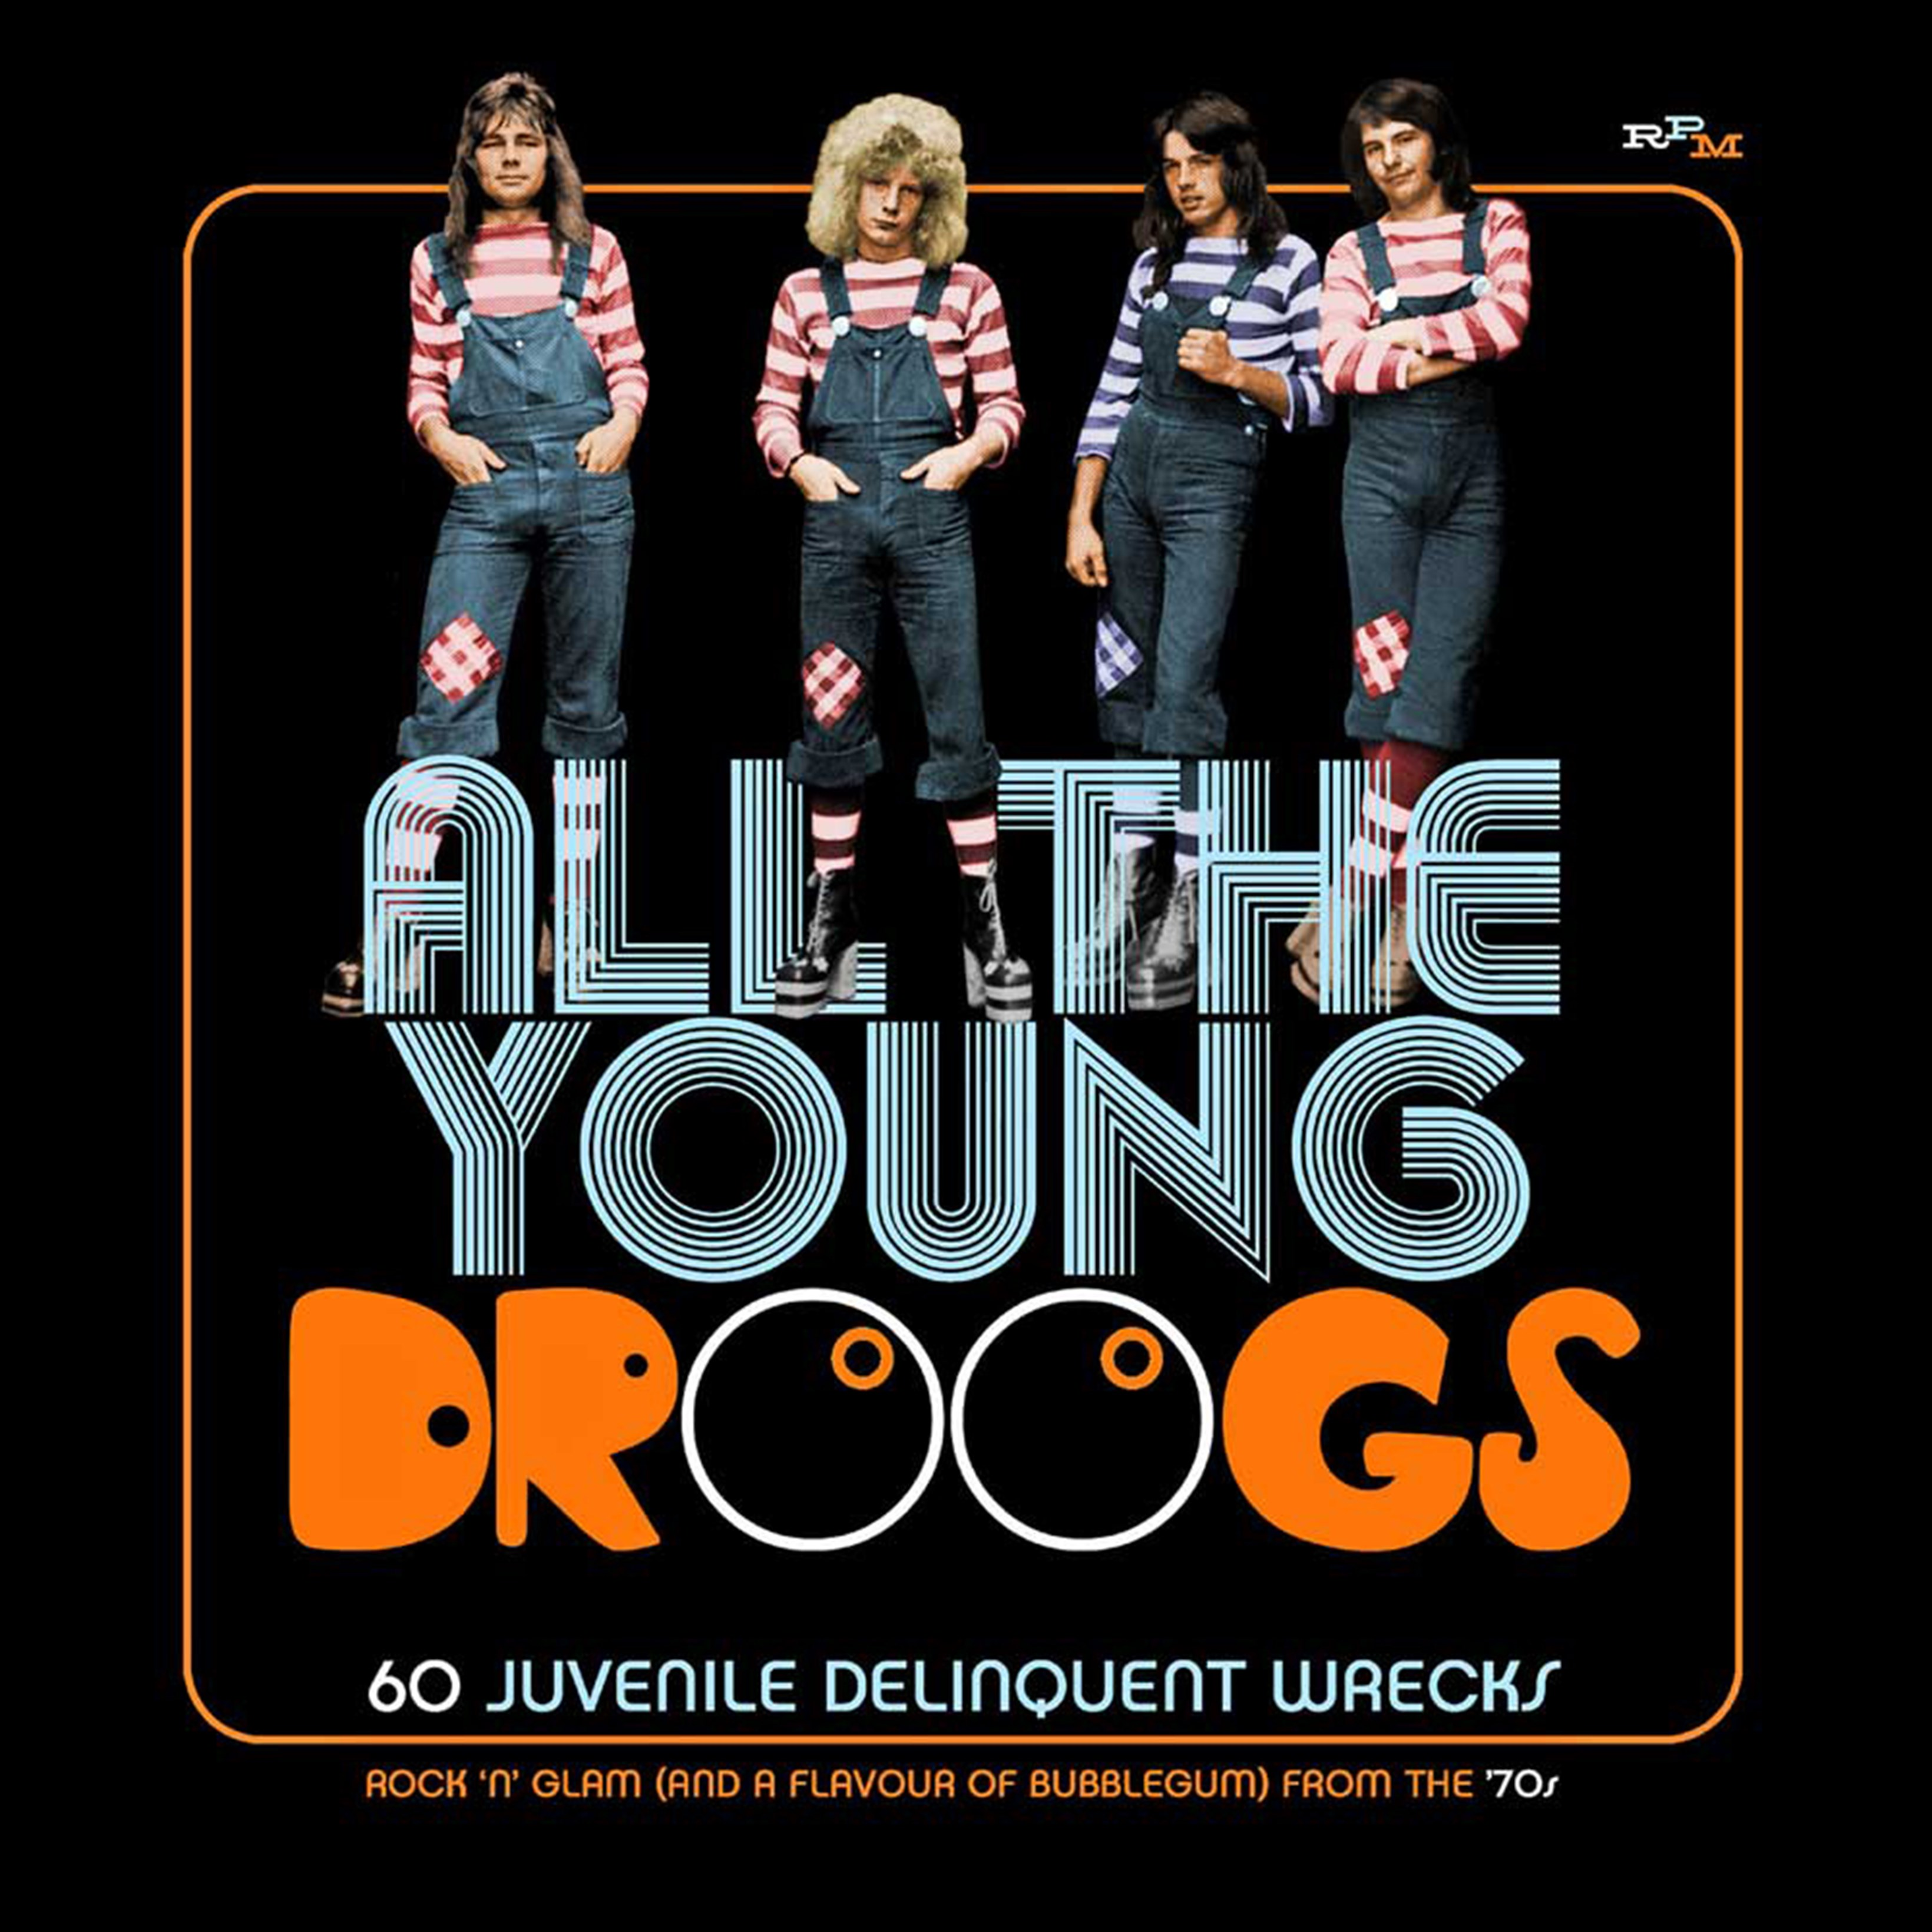 All the Young Droogs: 60 Juvenile Delinquent Wrecks - 1